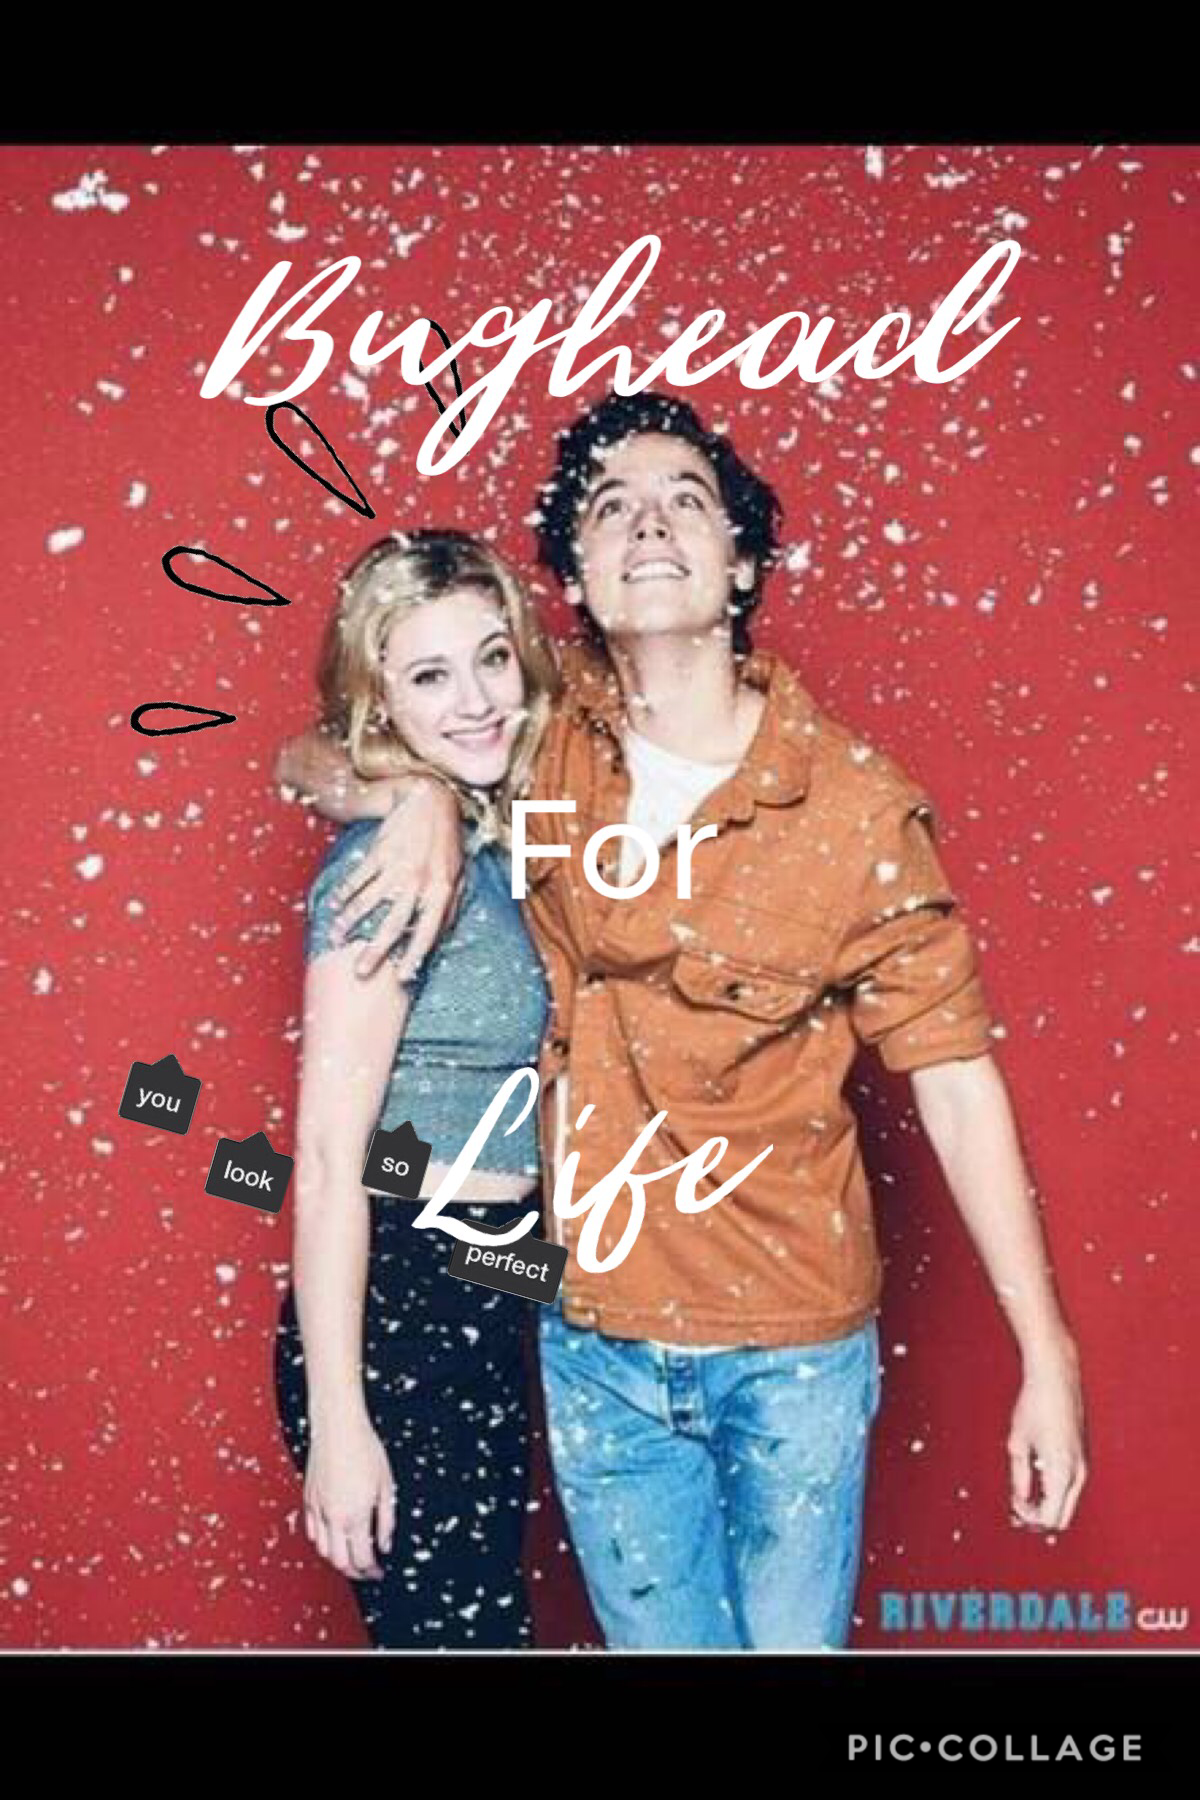 Collab With The Awesome unicorn_edit💛 Tap 💛  QOTD:Favourite Riverdale Couple  AOTD:BUGHEAD💛